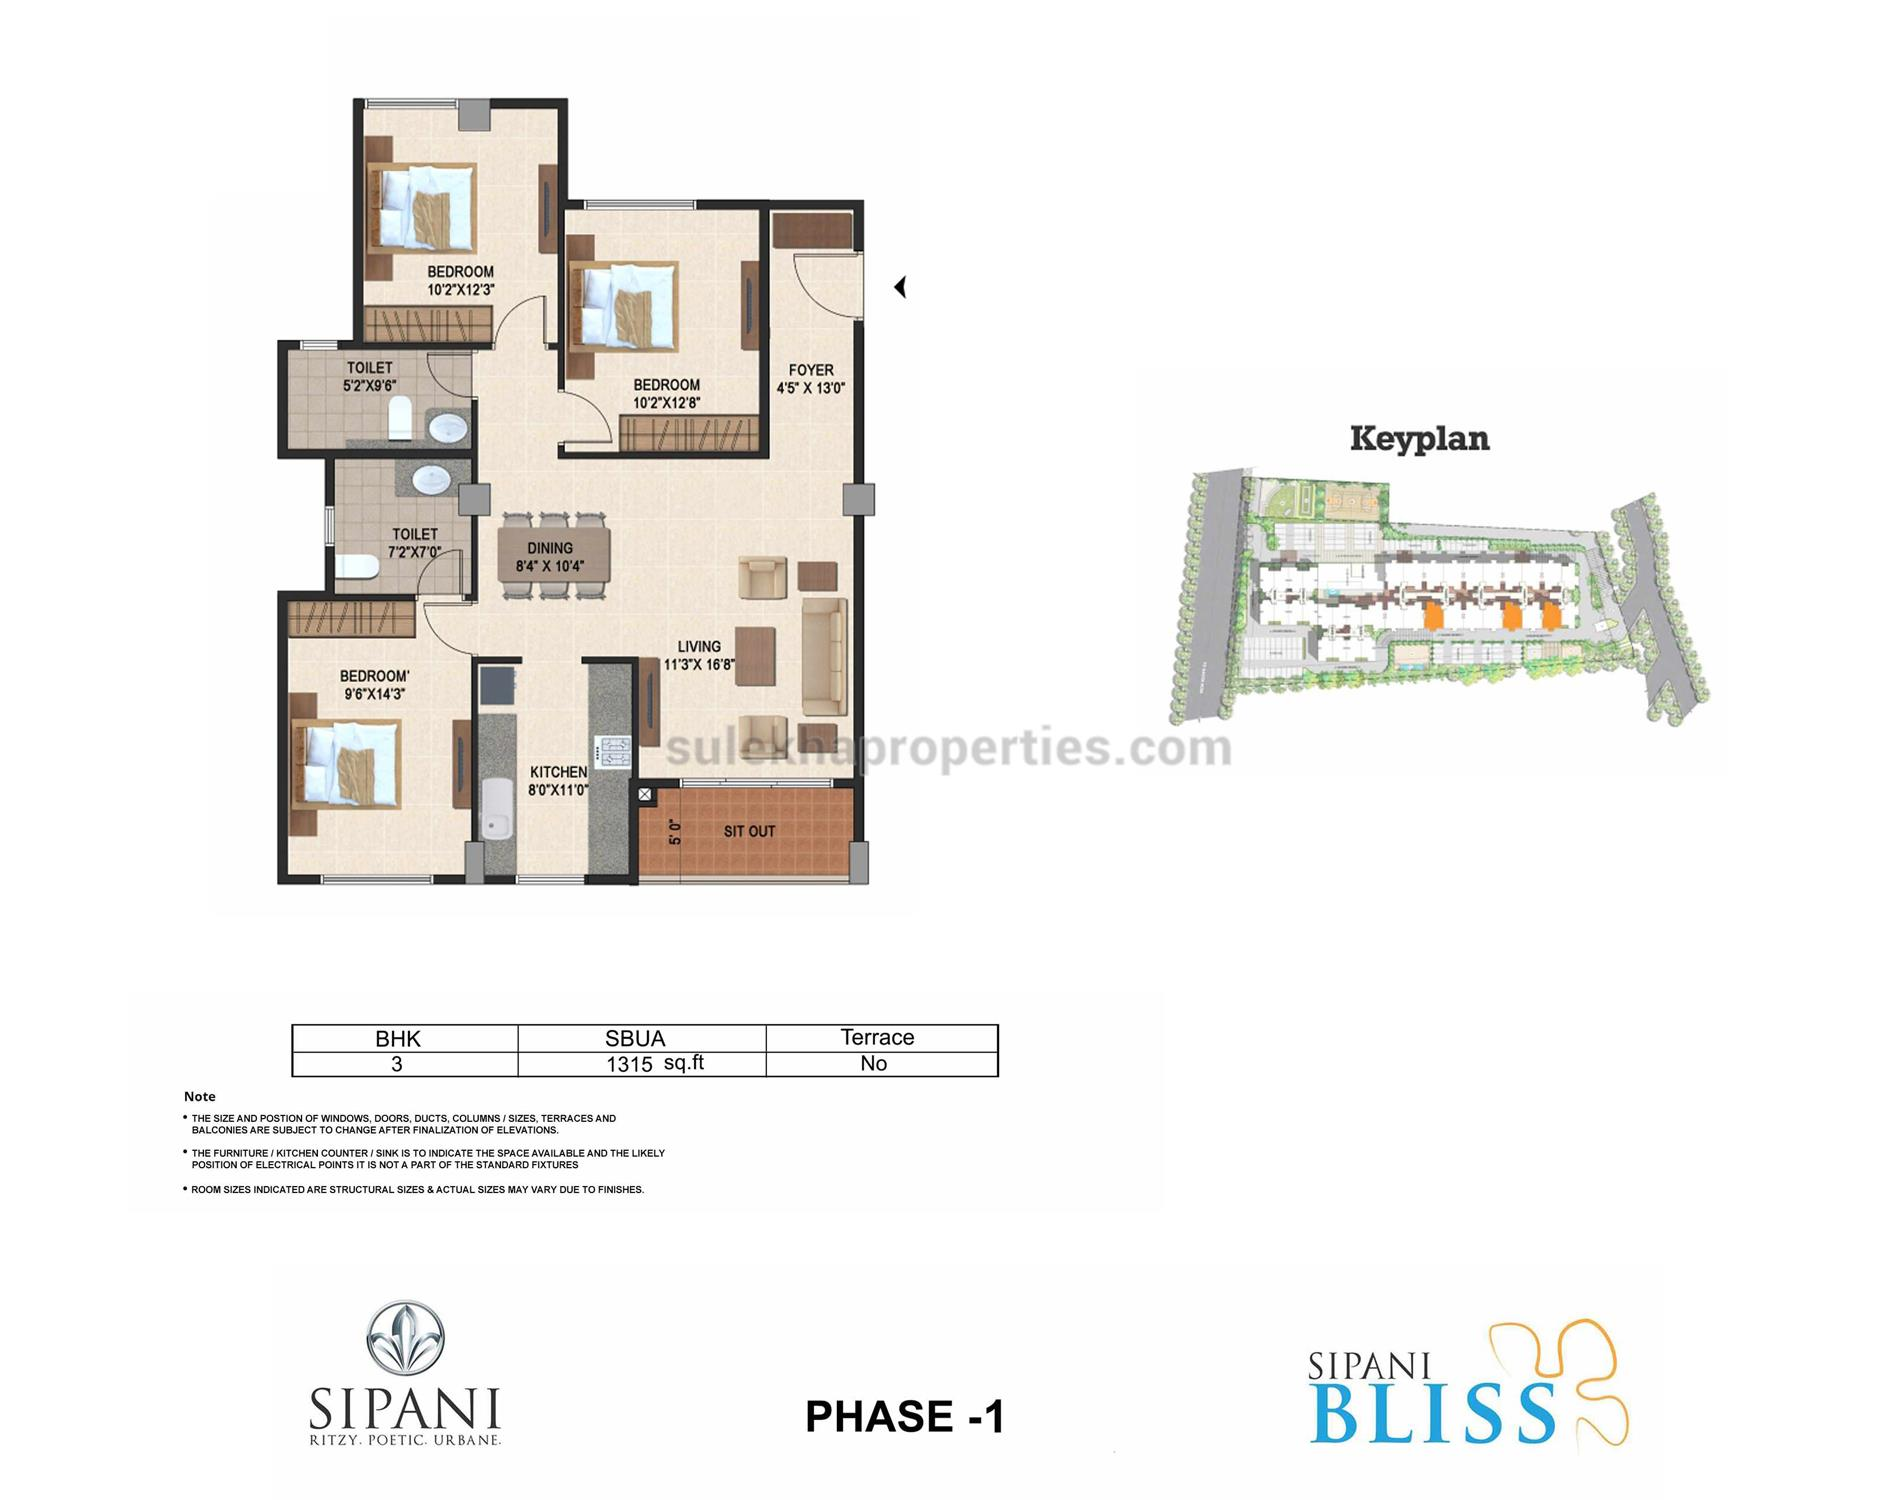 Sipani bliss in chandapura bangalore by sipani properties for Floor plan source